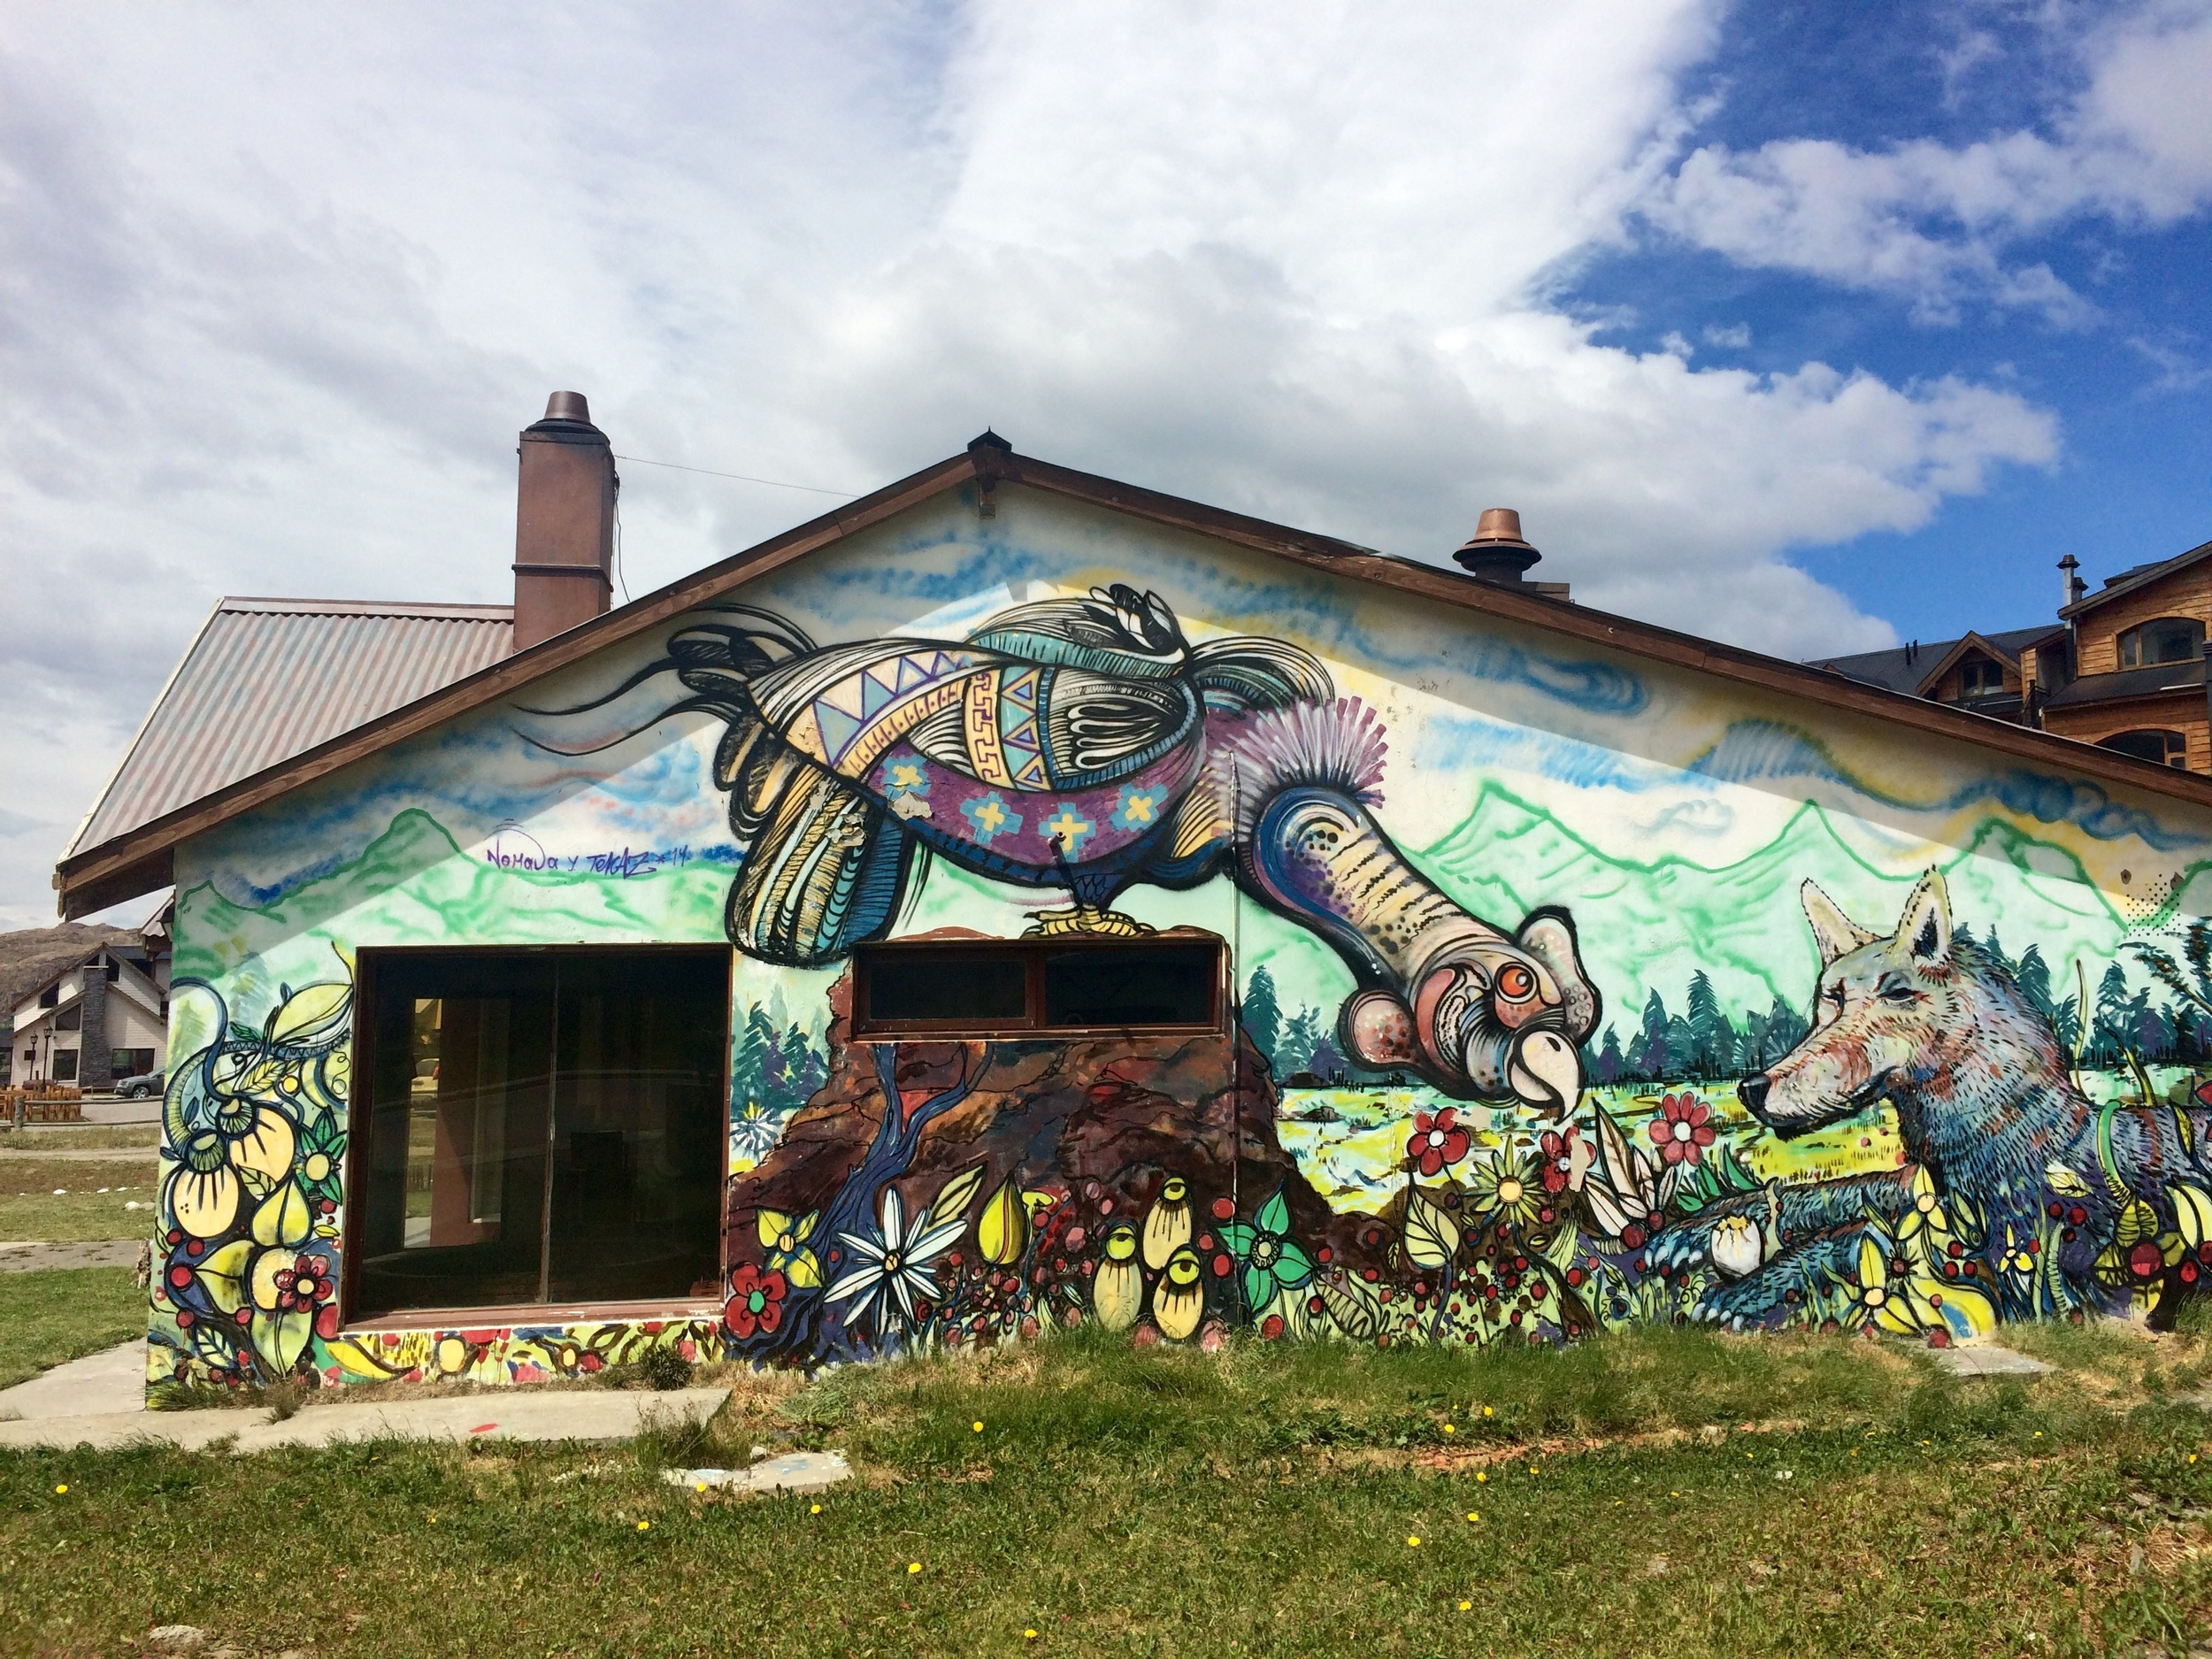 Some local murals - reminds me of the Mission in San Francisco!